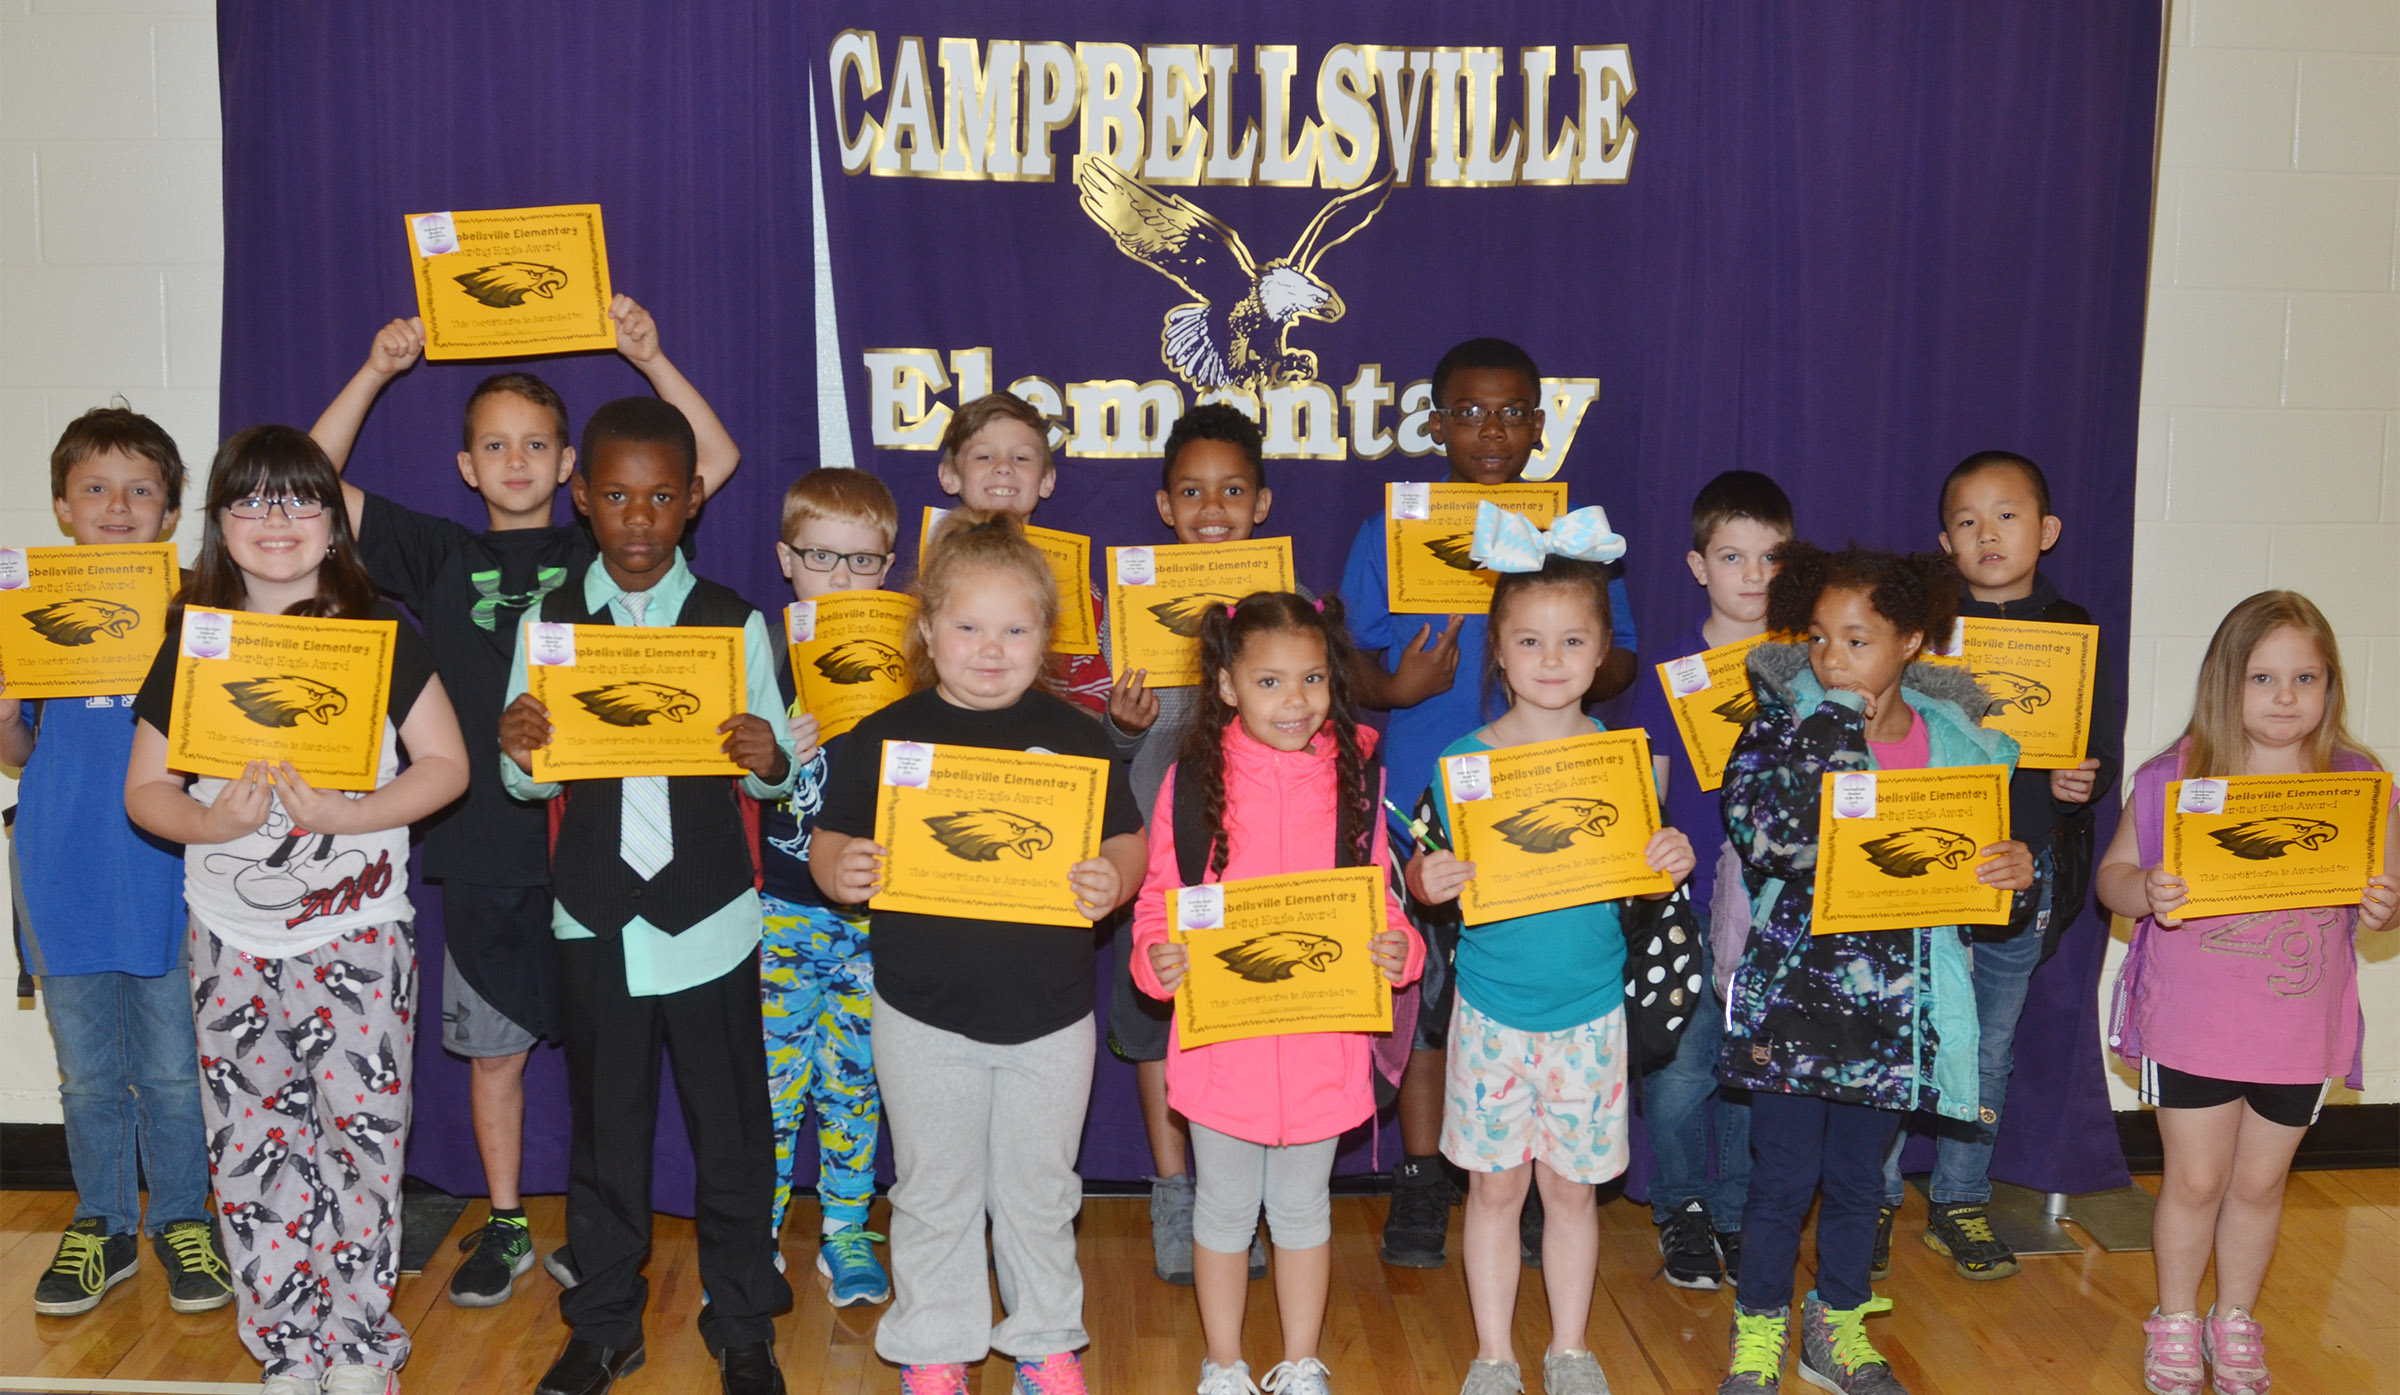 From left, front, are third-grader Lauren Pace, first-grader Lazarick Miller, kindergarteners ReAnna Jeffries and Jasymon Musselwhite, first-grader Molly Wolford and kindergarteners Brea Miller and Scarlett Cook. Back, third-graders Daniel Shively and Bradley Paris, second-graders Aidan Bowles and Isaya Adams, third-graders Anthony Goins and Austin Sloan, first-grader Atticus Strange and second-grader Alex Yang. Absent from the photo is second-grader Lillian Burnett.